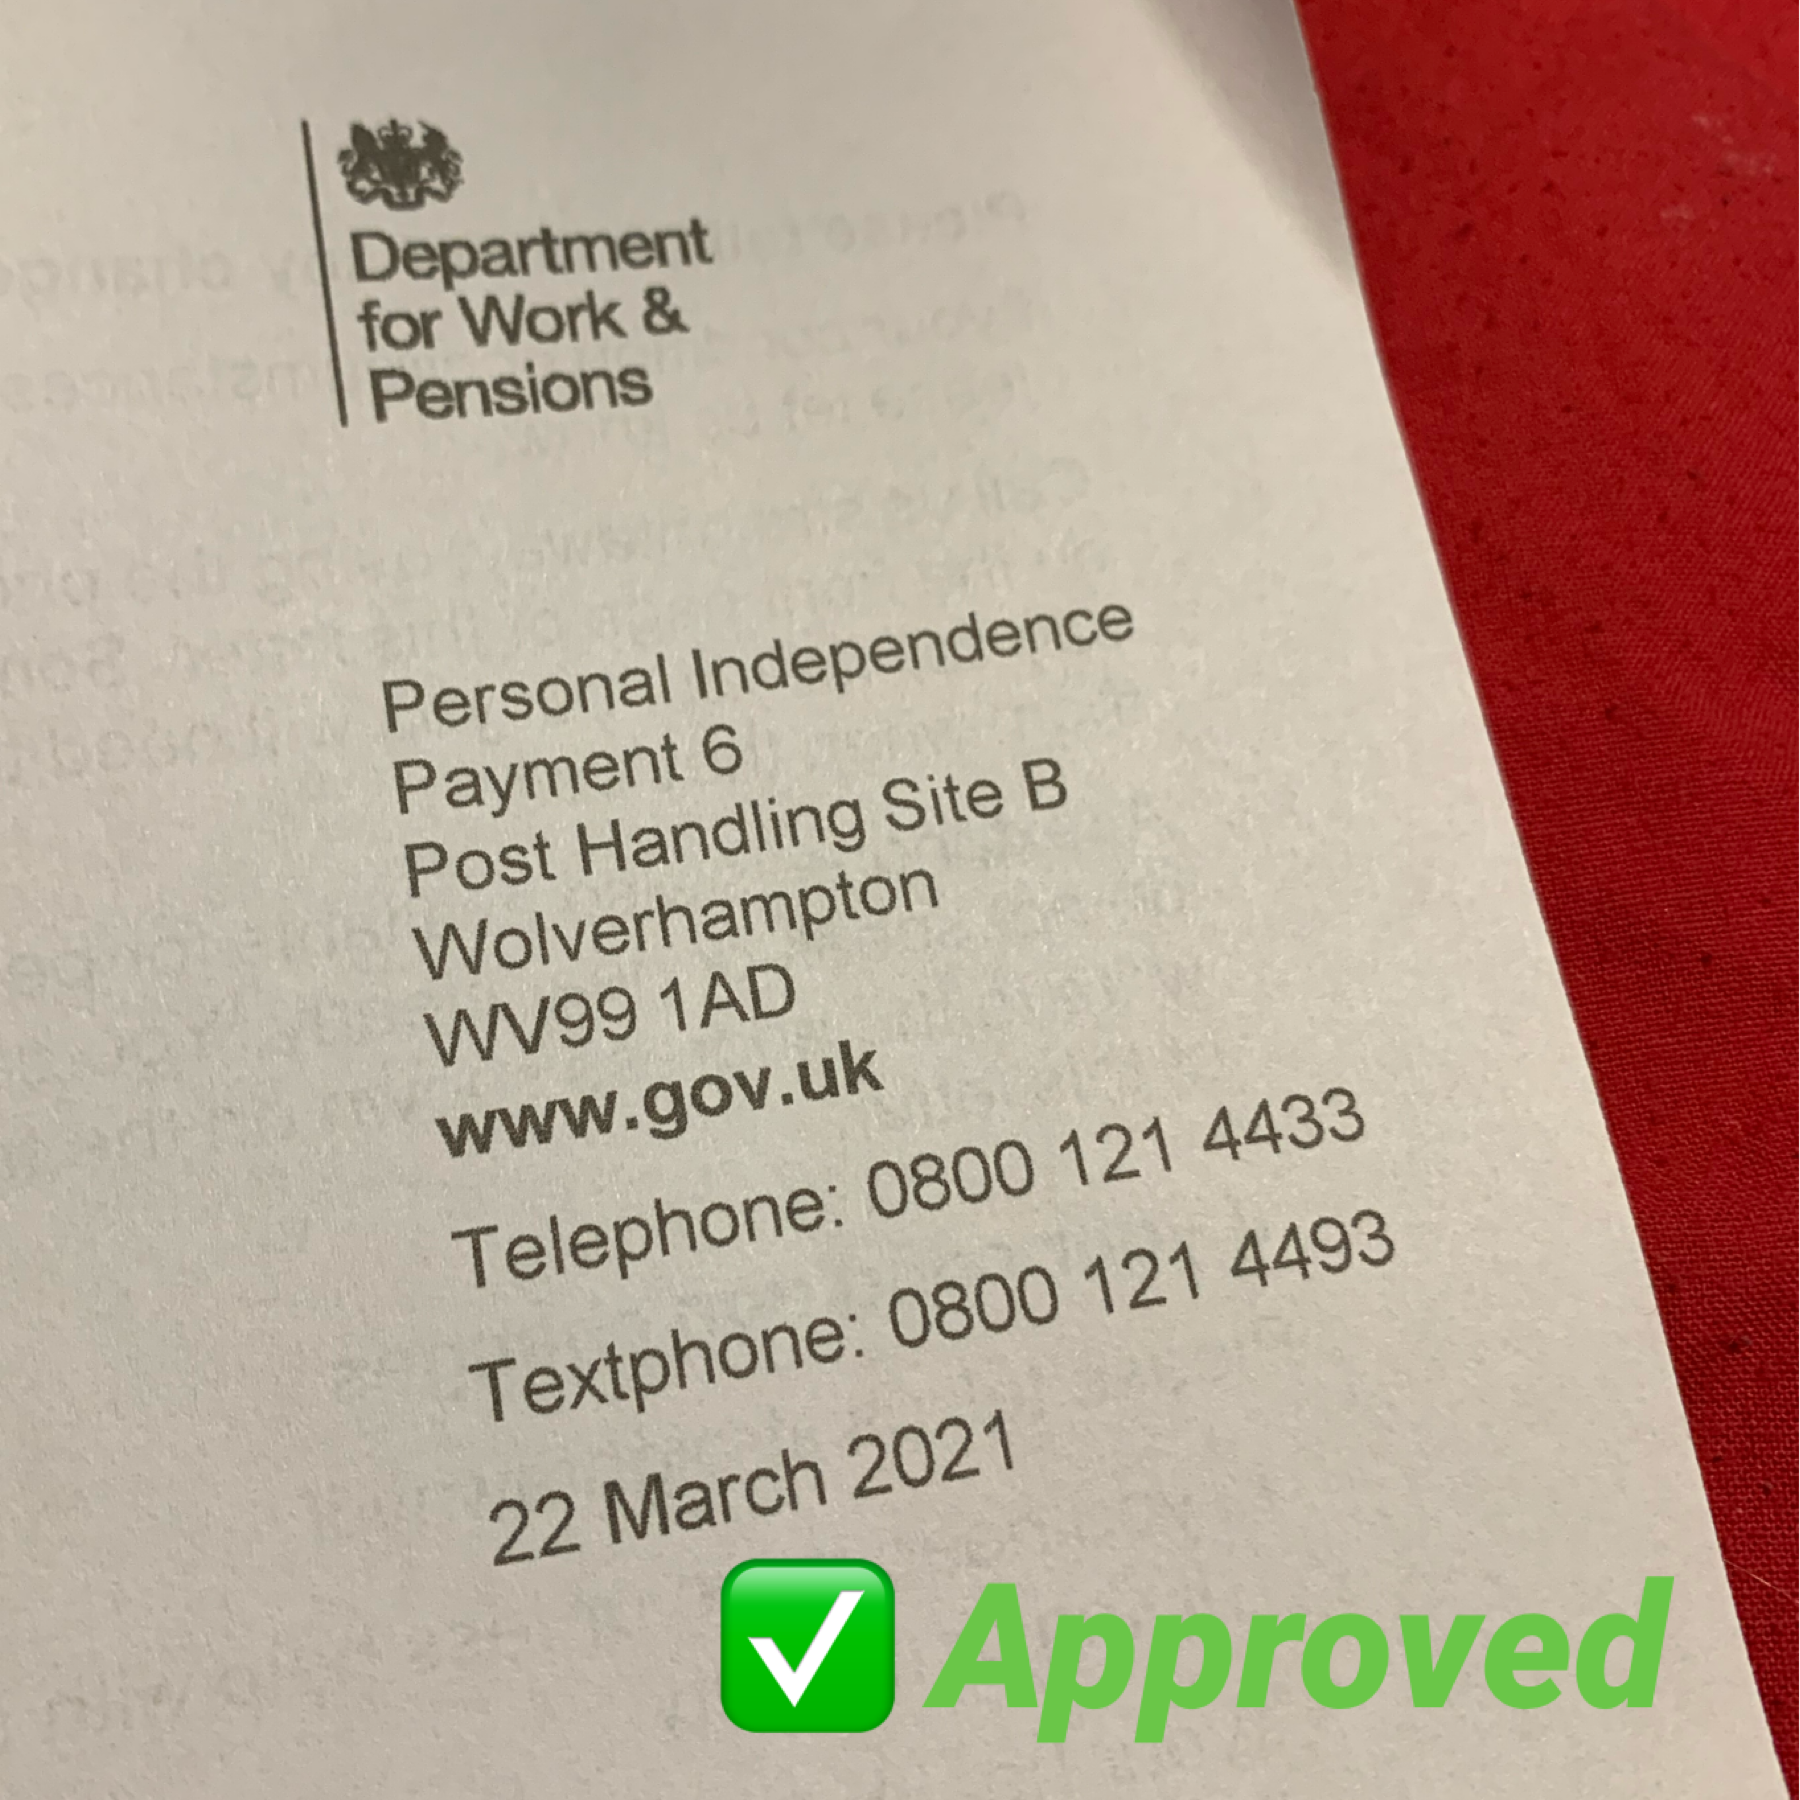 Personal Independence Payment (Part)